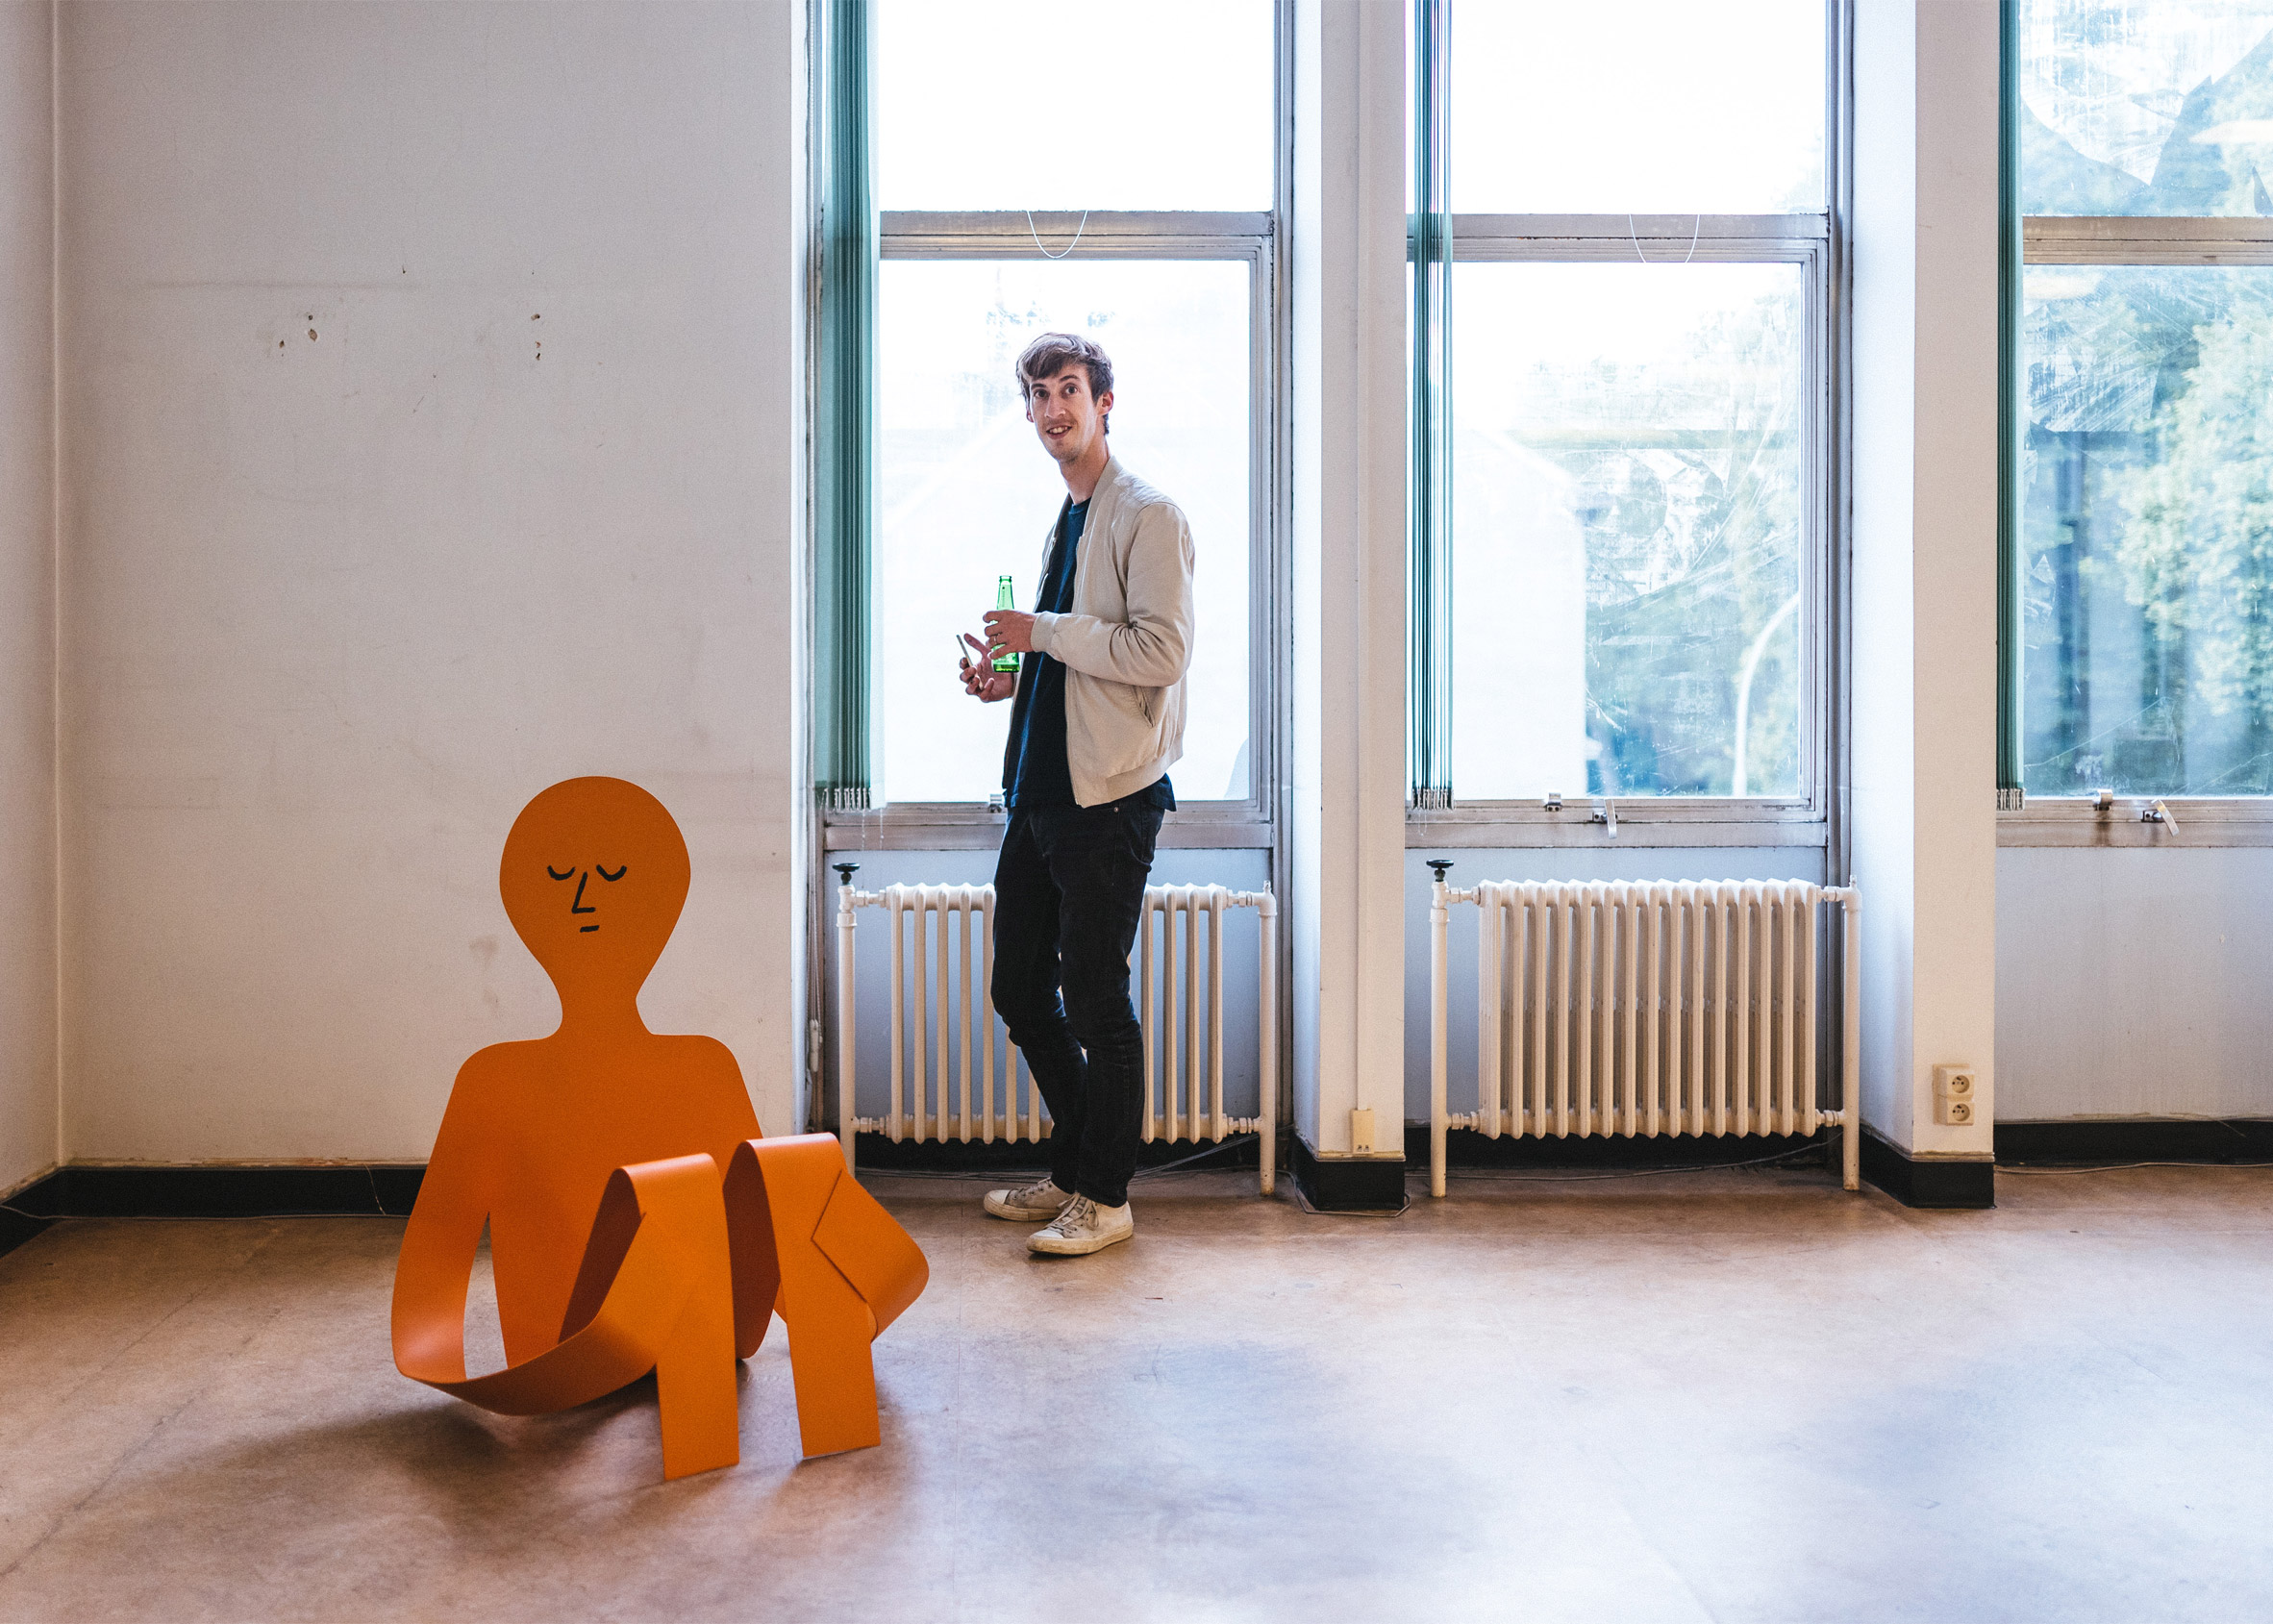 Jean Jullien opens first sculpture exhibition in Ghent's Dift Gallery